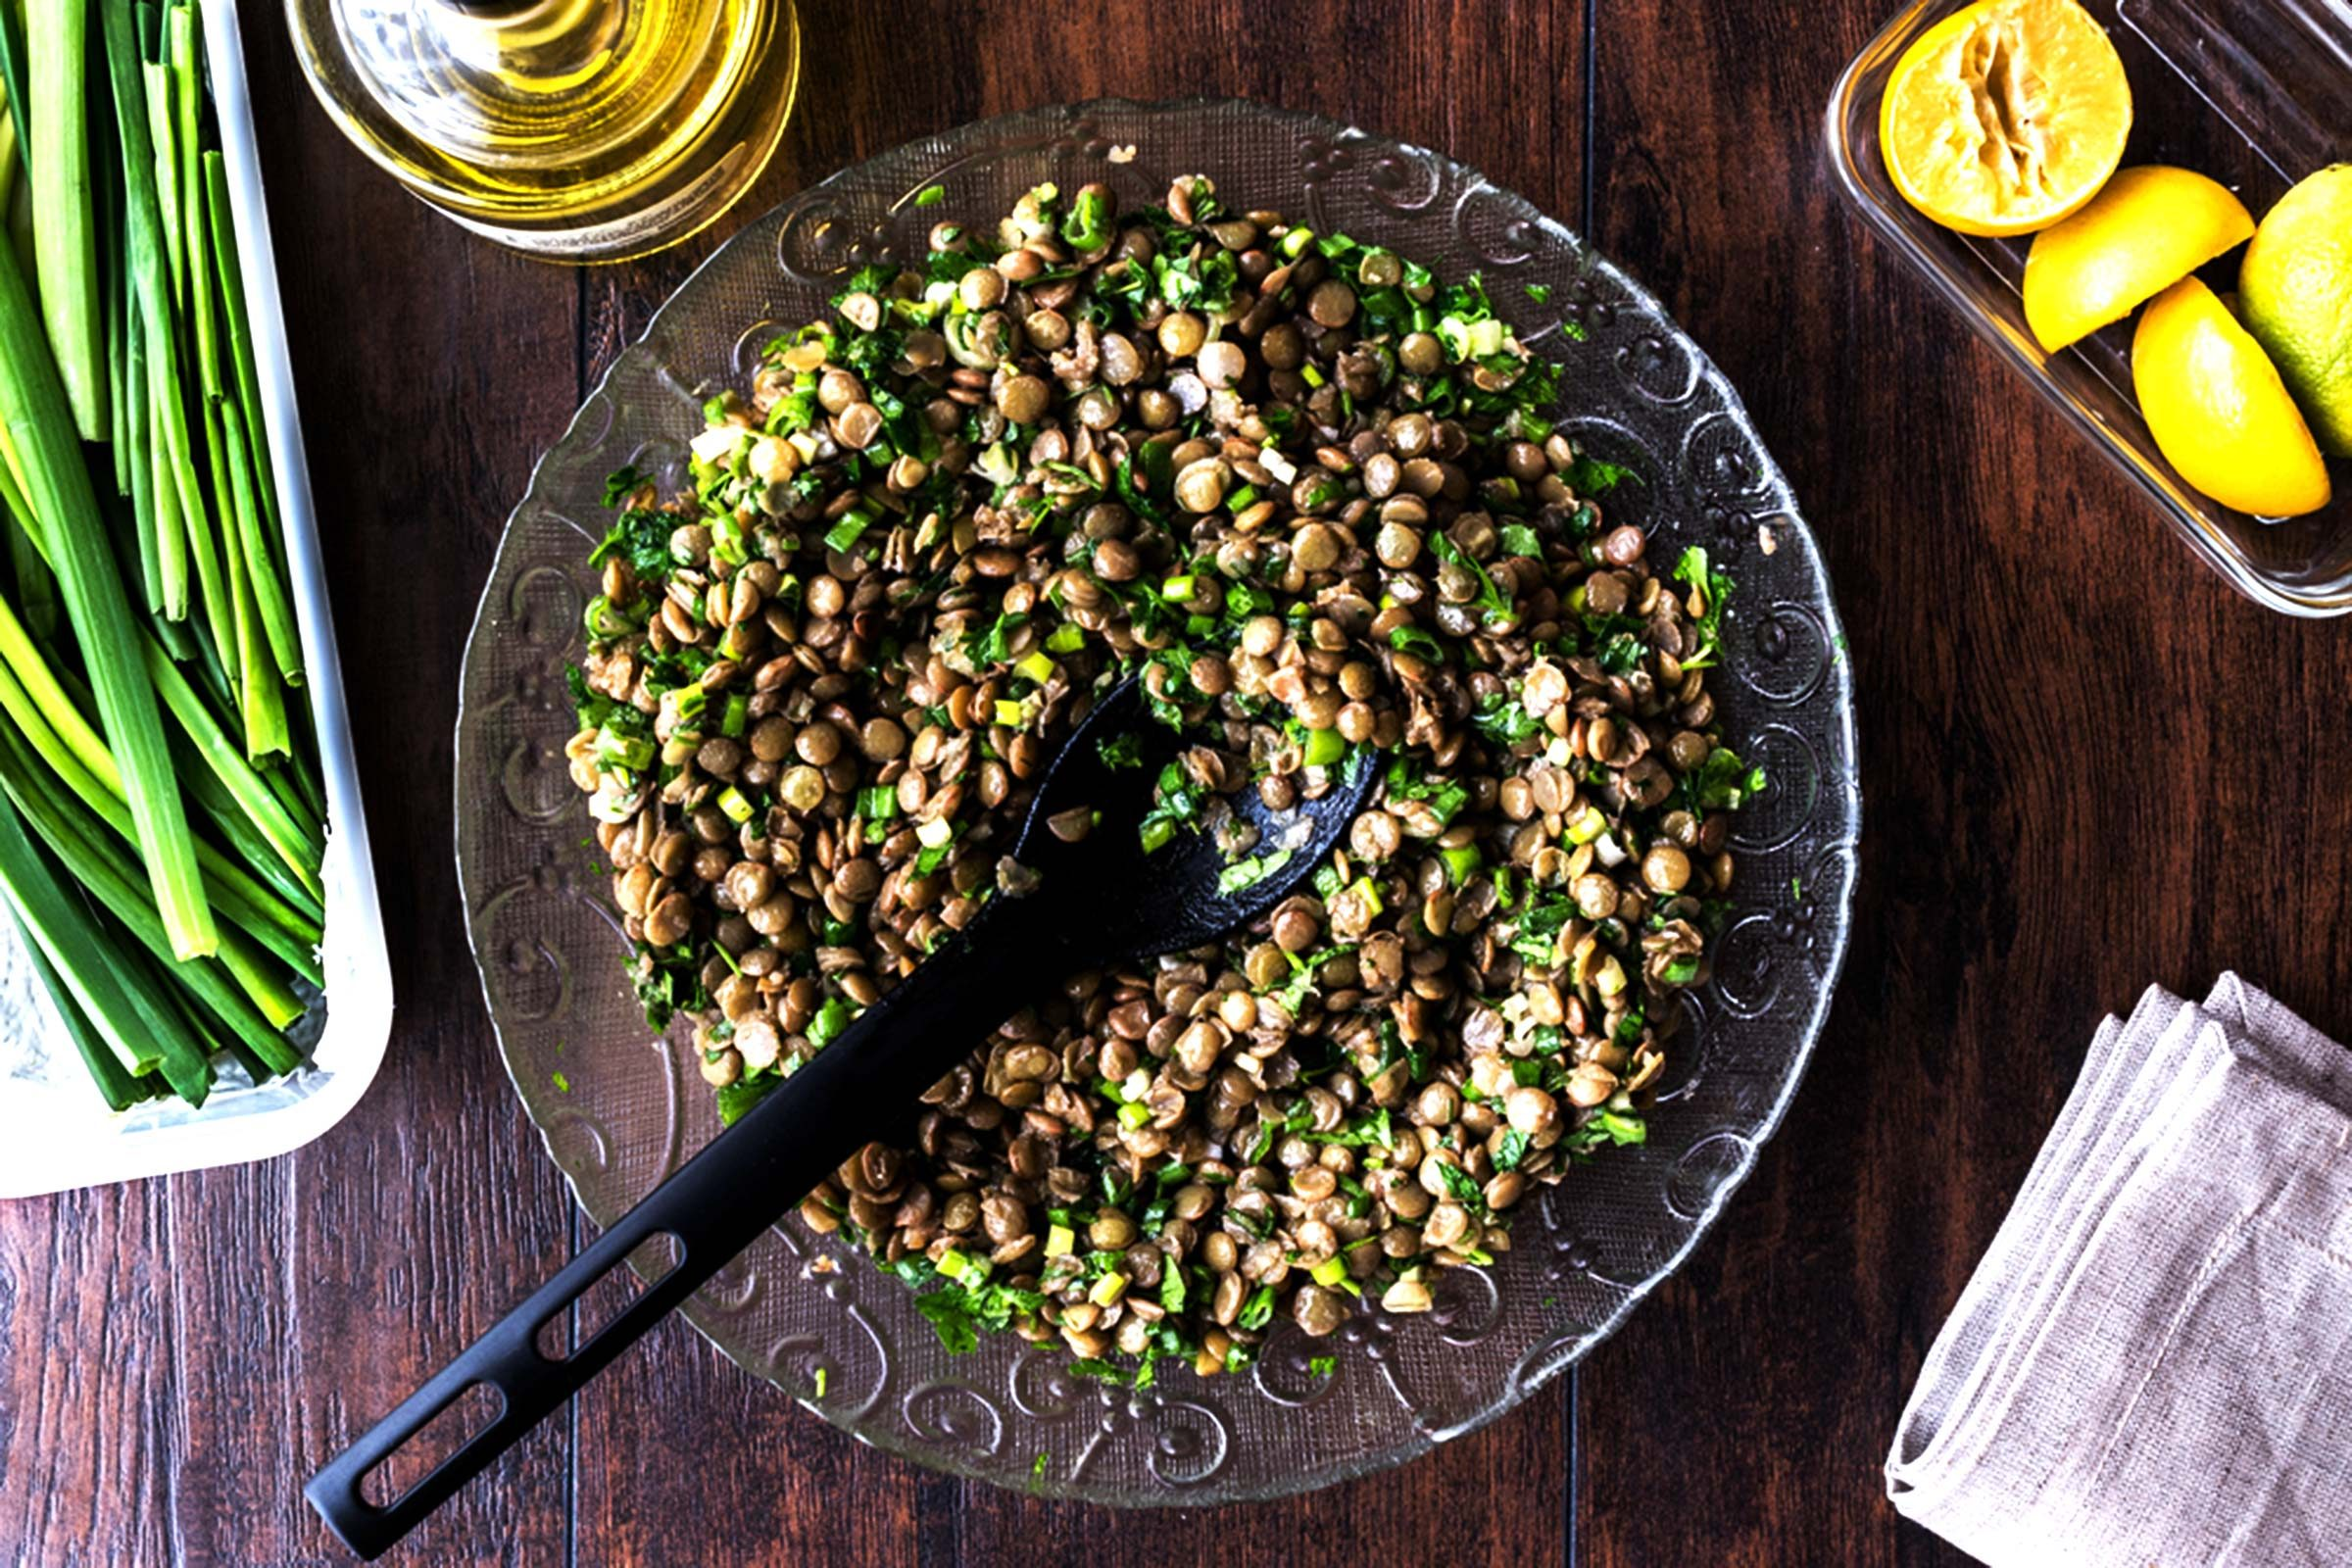 Lentil and green onion dish.